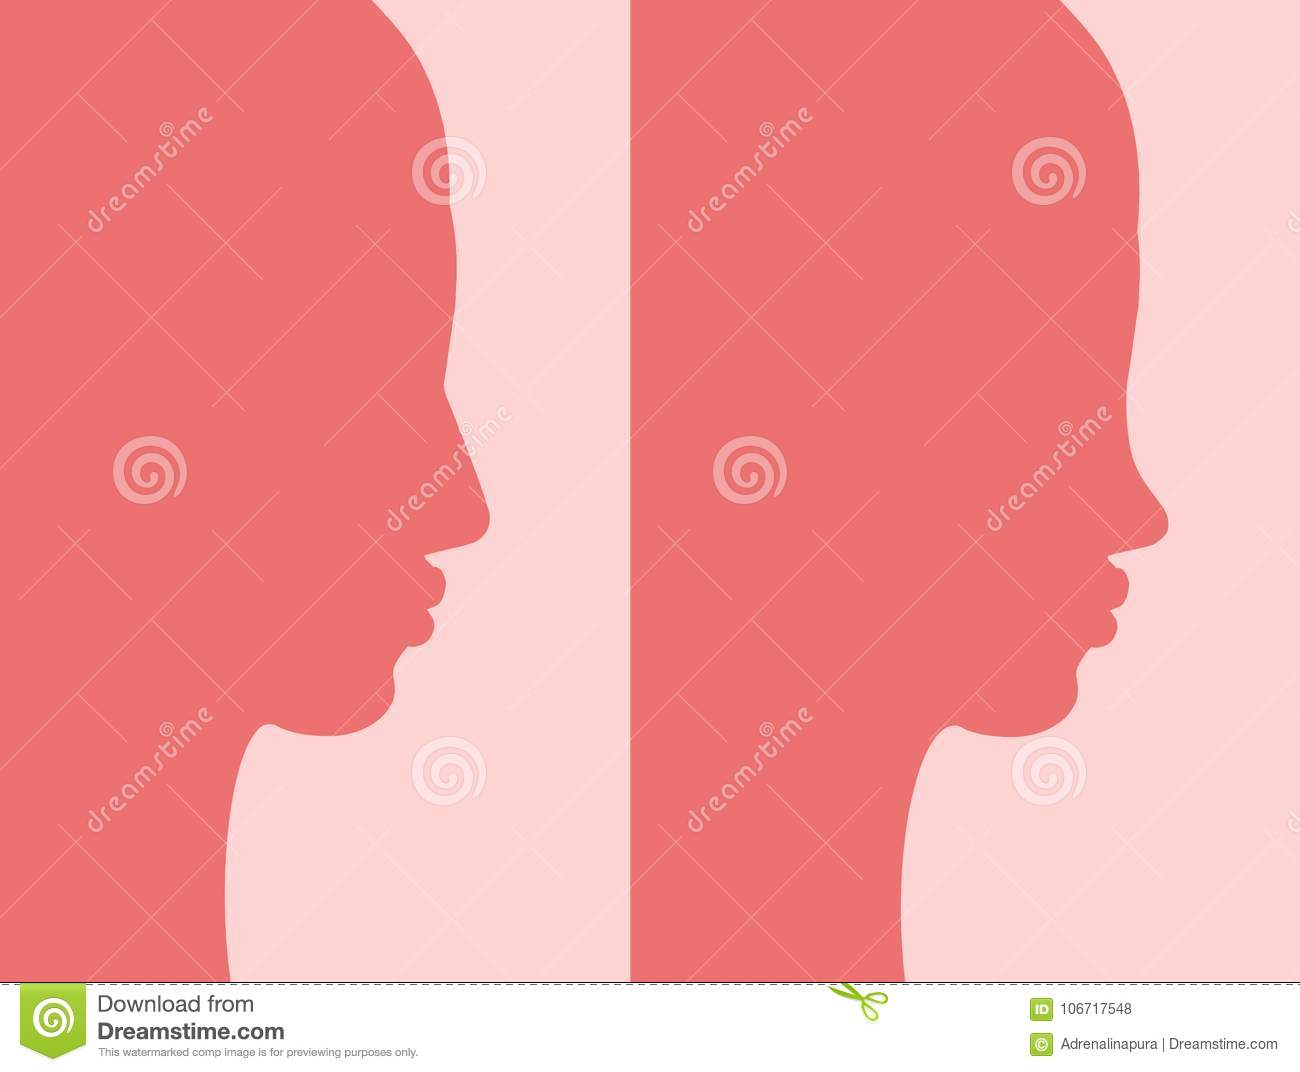 Before And After Rhinoplasty Stock Illustration - Illustration of